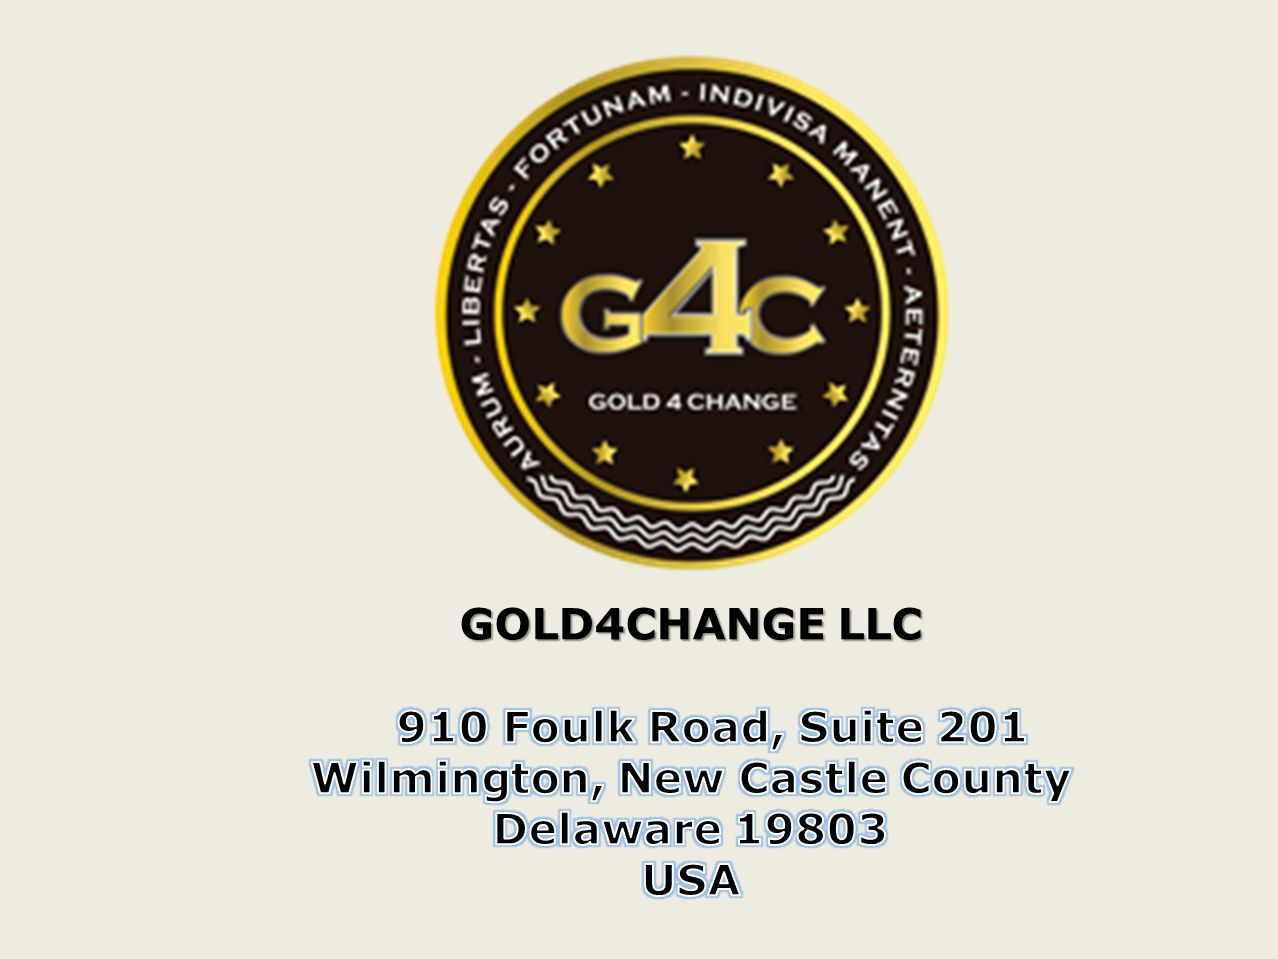 GOLD4CHANGE LLC 910 Foulk Road, Suite 201 Wilmington, New Castle County Delaware 19803 USA